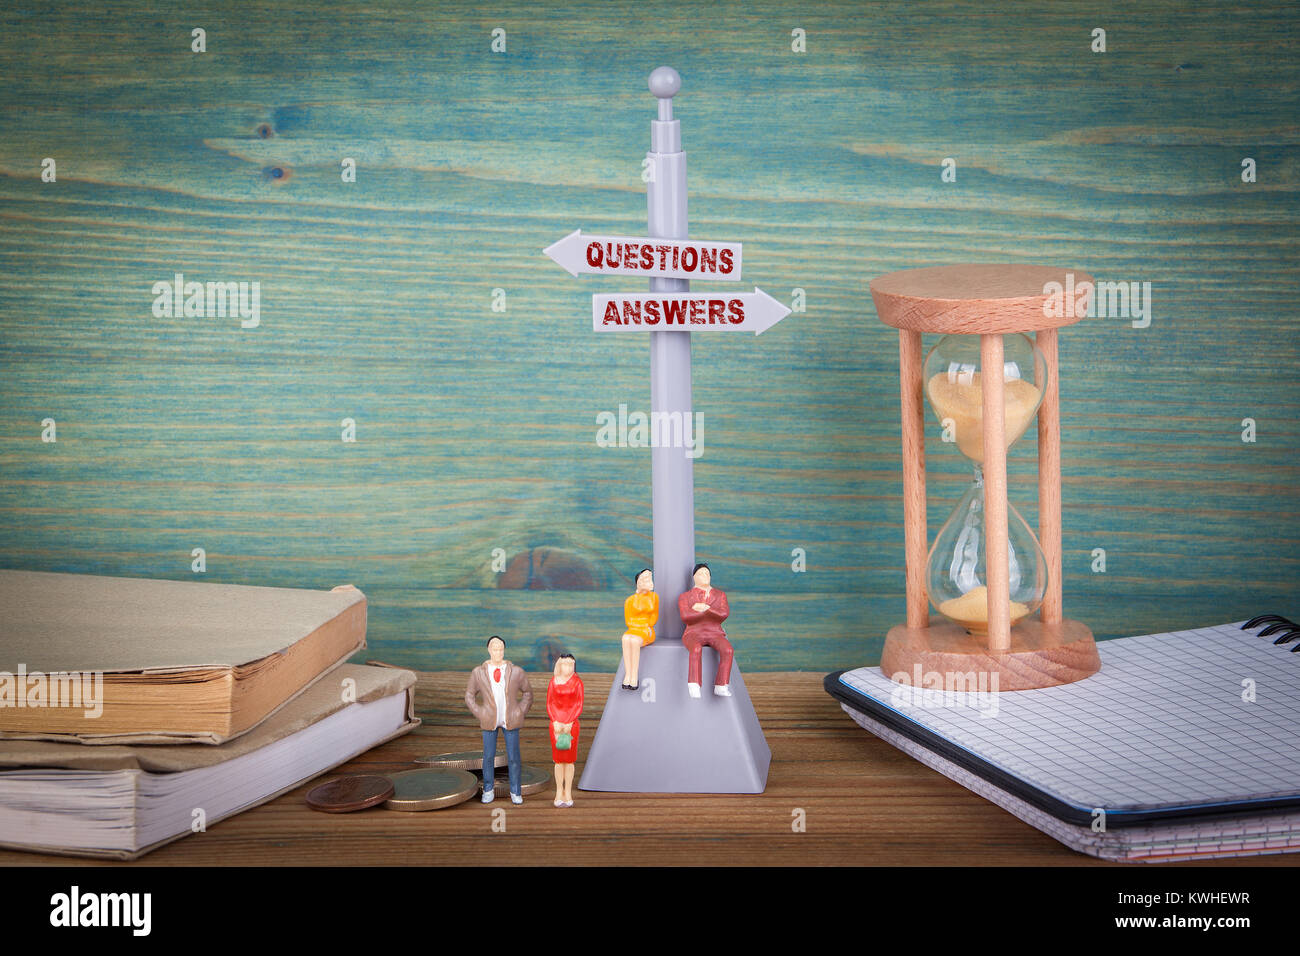 questions and answers. Signpost on wooden table. - Stock Image